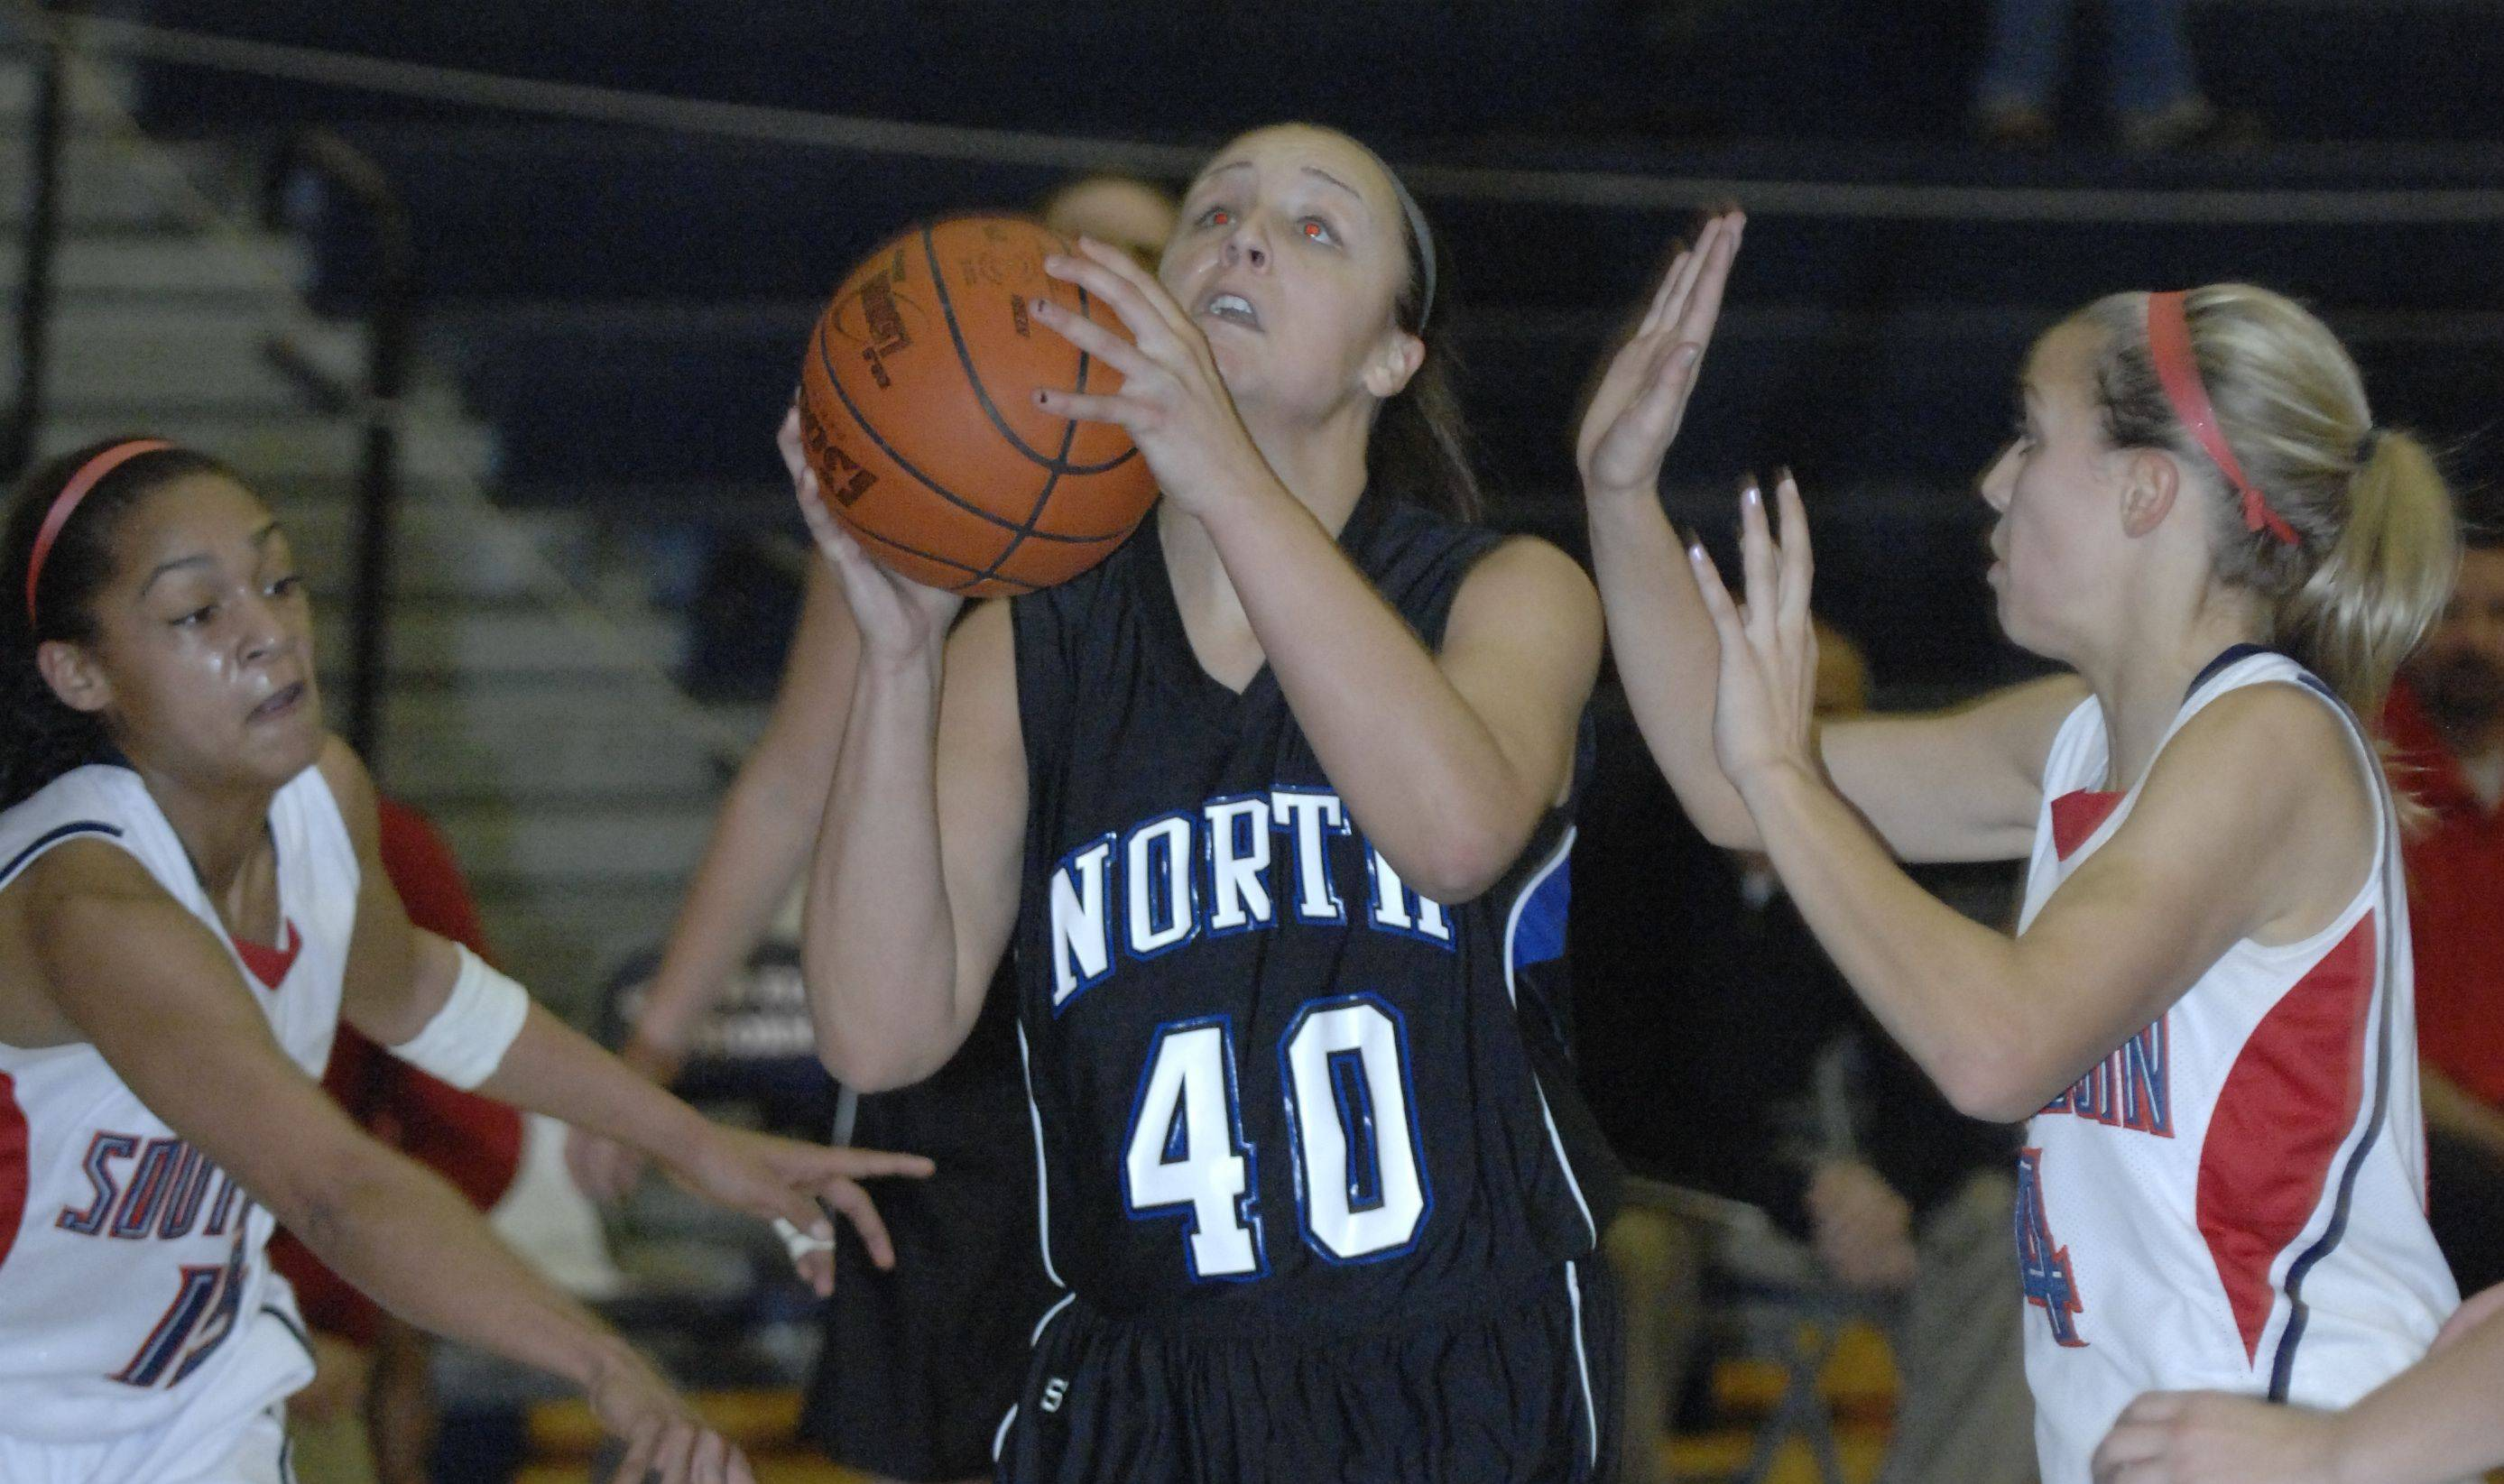 Laura Stoecker/lstoecker@dailyherald.com Images from the St. Charles North vs. South Elgin girls basketball game Saturday, December 11, 2010.